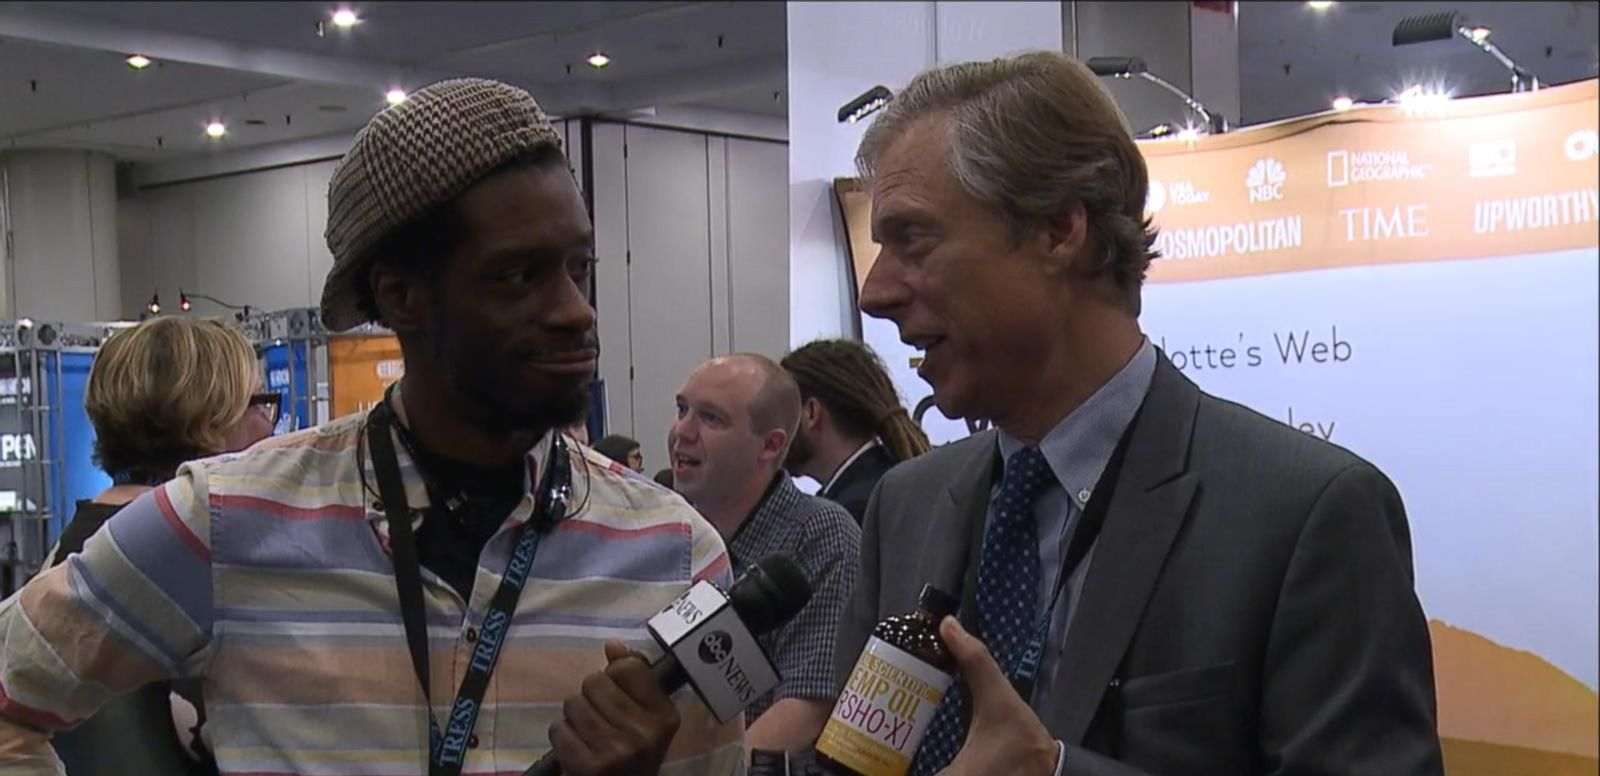 VIDEO: Inside the Cannabis World Congress and Business Expo